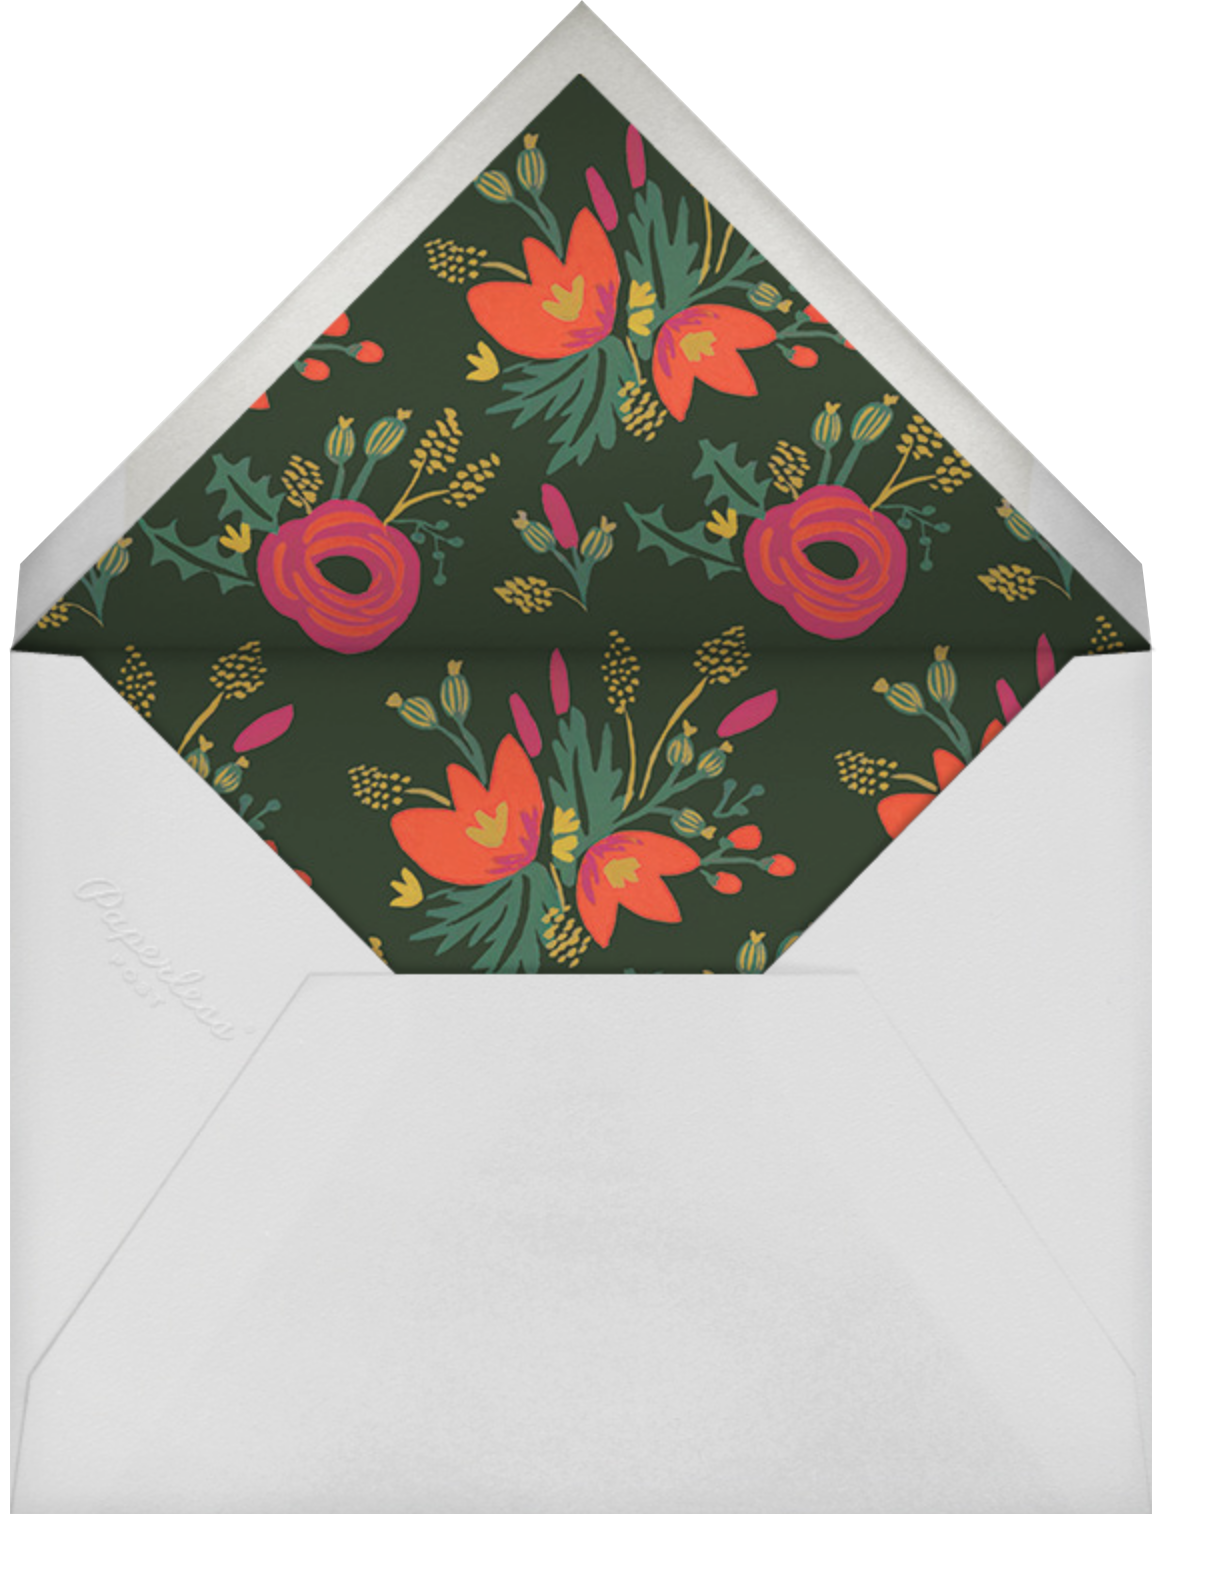 Merry, Bright, and Blooming - Rifle Paper Co. - Business holiday cards - envelope back